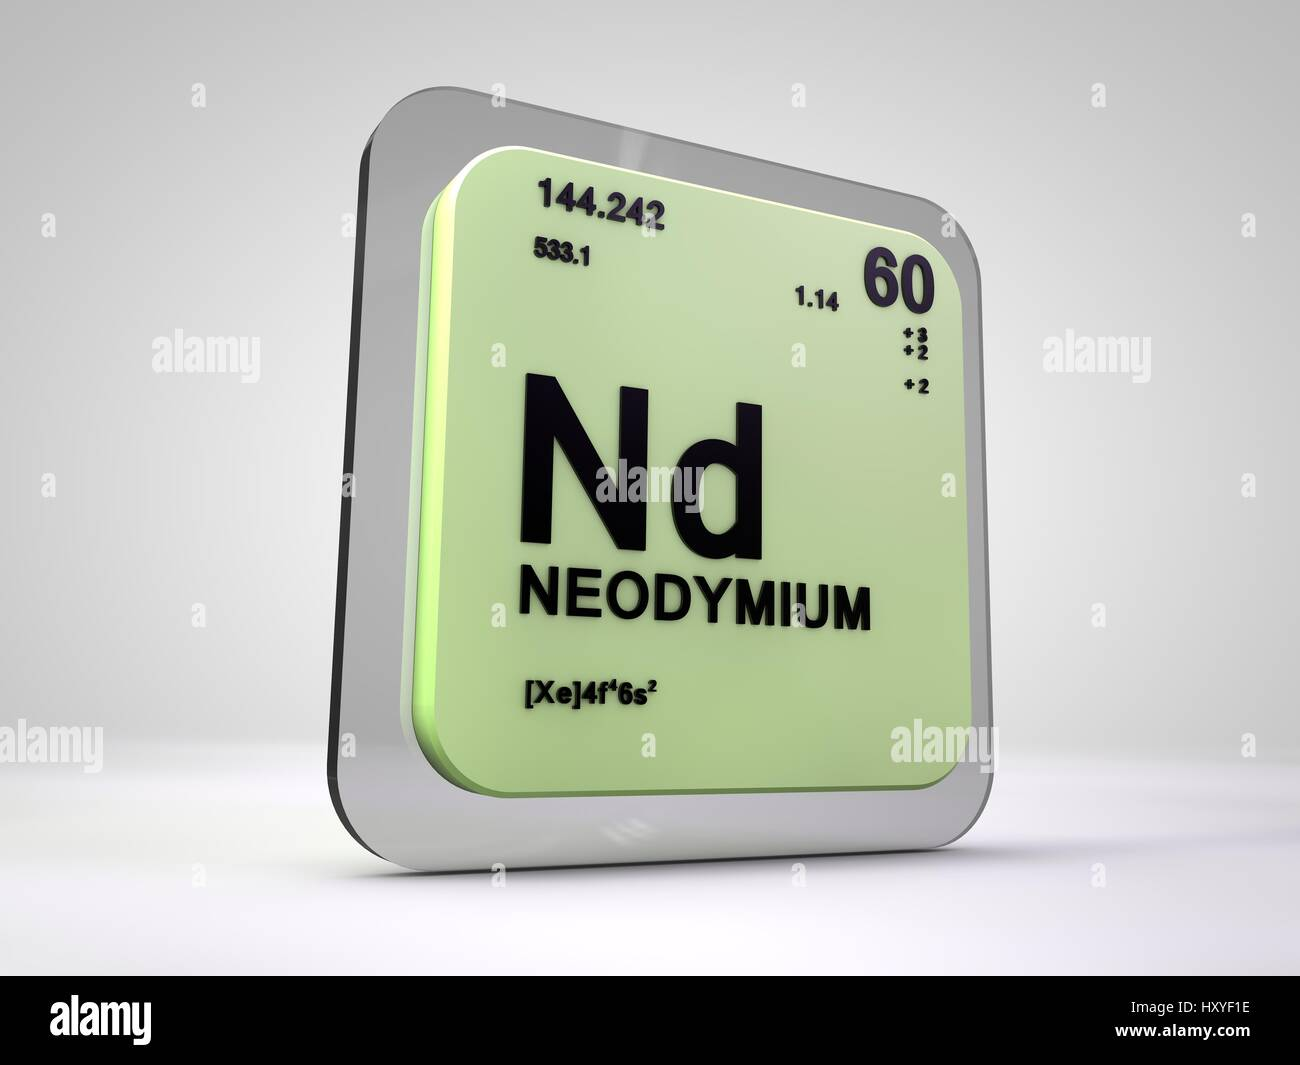 Neodymium nd chemical element periodic table 3d render stock neodymium nd chemical element periodic table 3d render gamestrikefo Choice Image